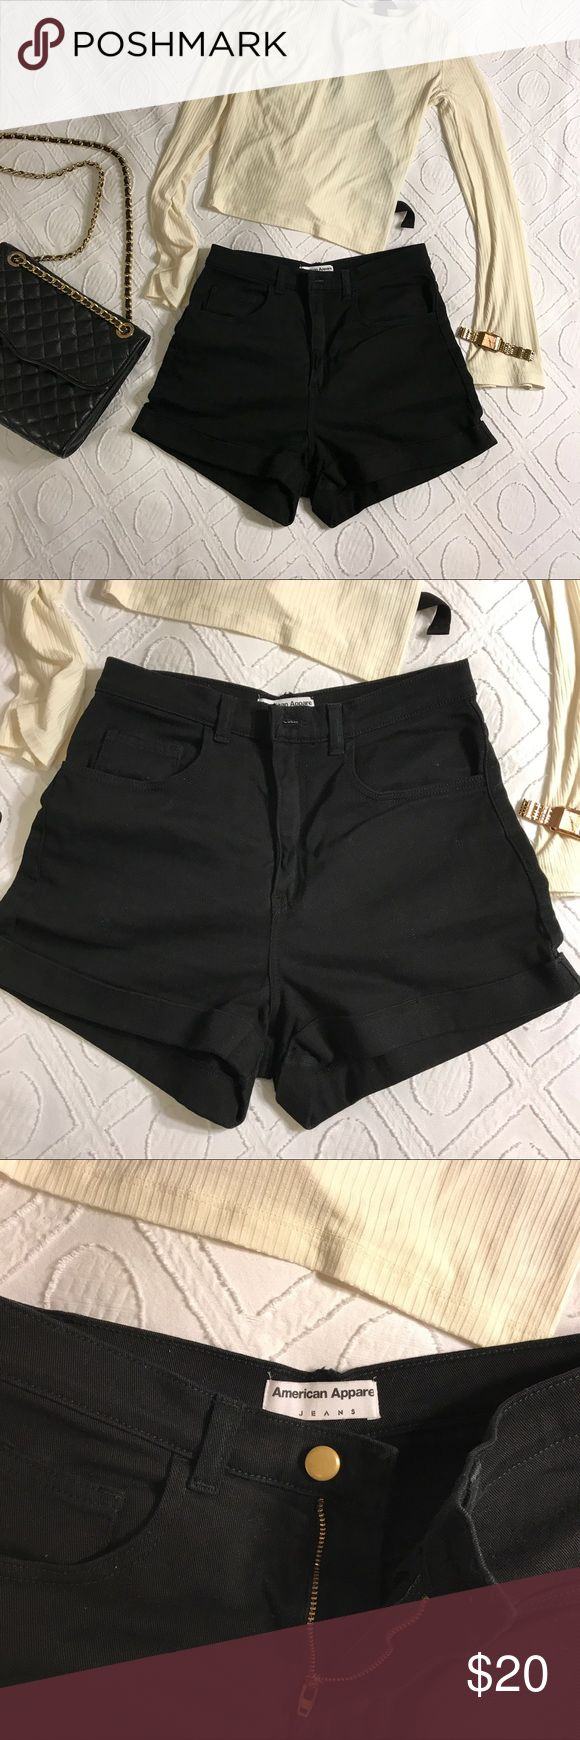 High waisted American Apparel Jean Shorts High waisted. Black. Jean material. Stretchy. American Apparel Shorts Jean Shorts